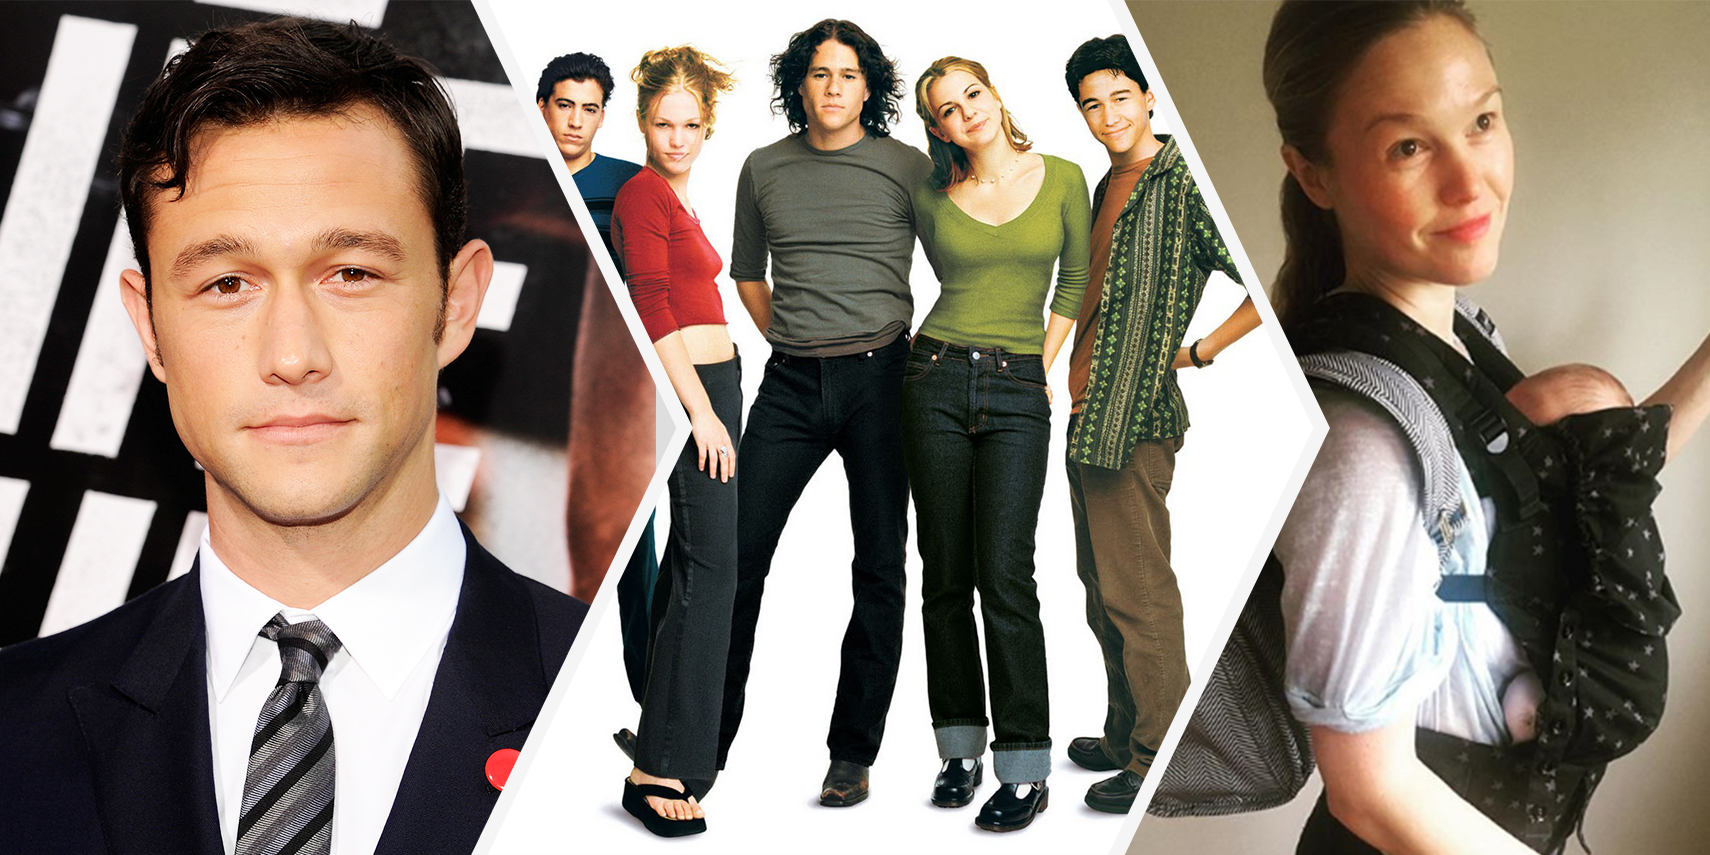 10 Things I Hate About You Soundtrack: 10 Things I Hate About You: What The Cast Looked Like In